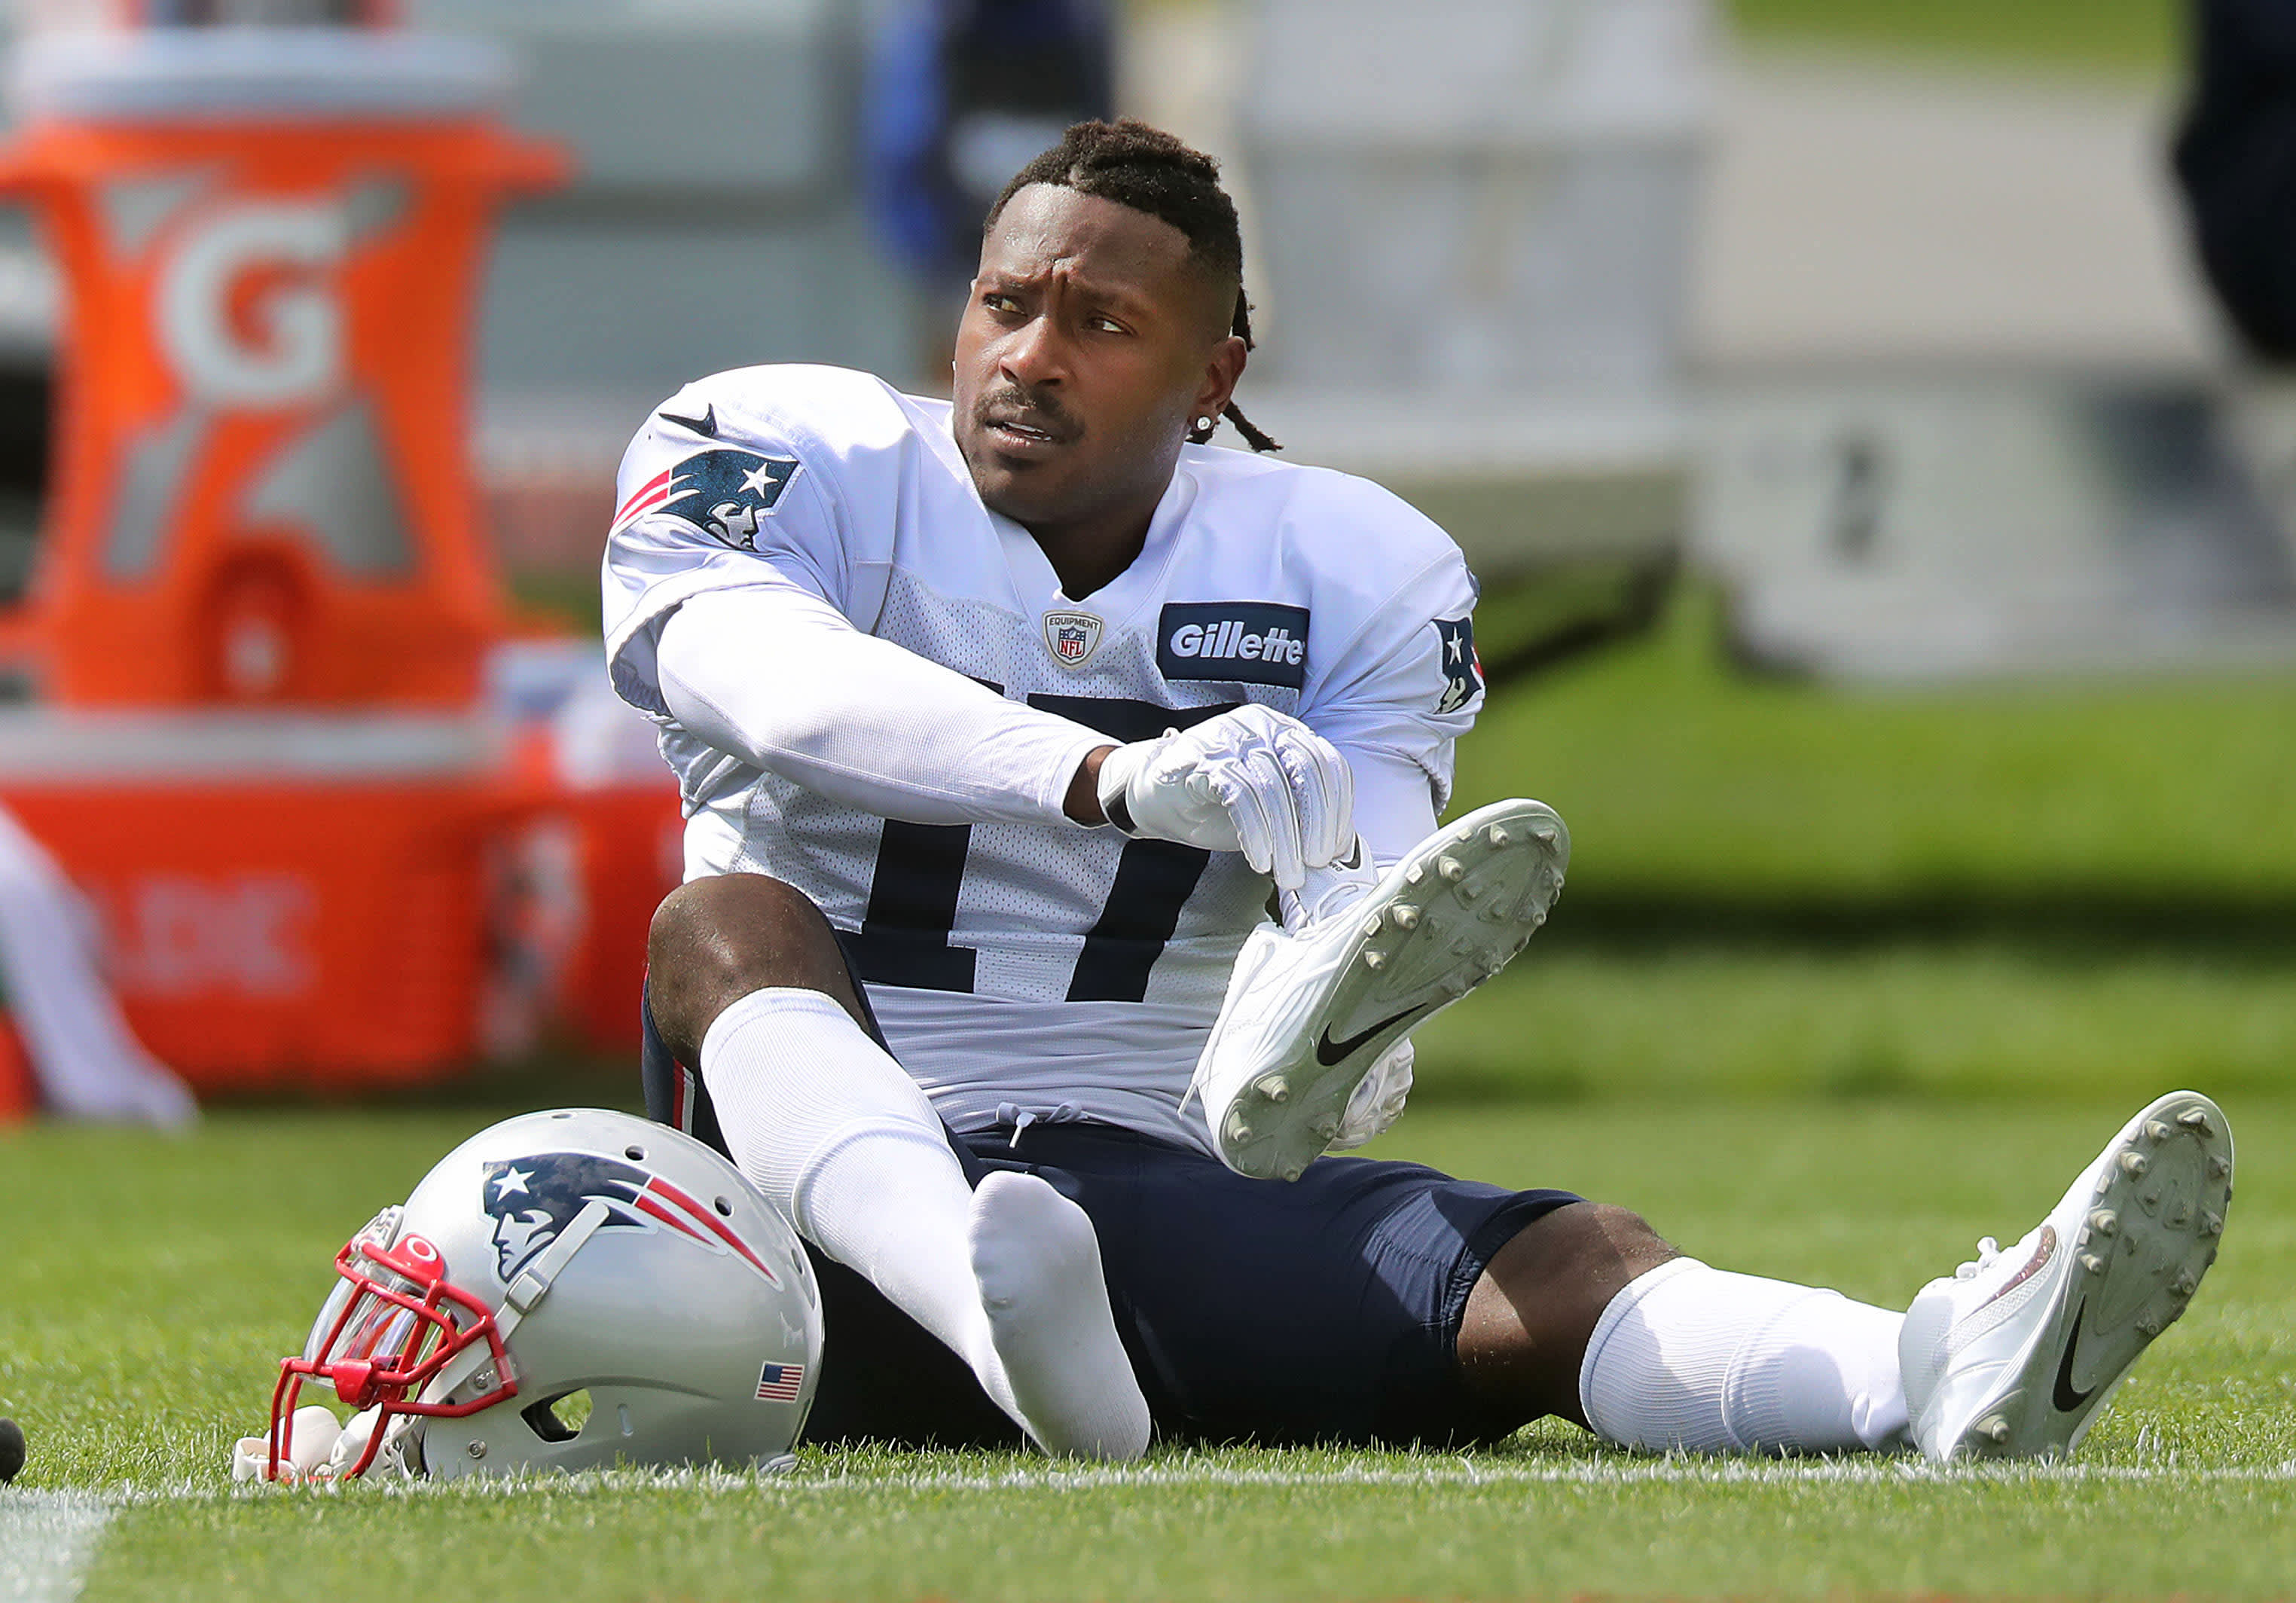 New England Patriots release superstar Antonio Brown after rape allegations